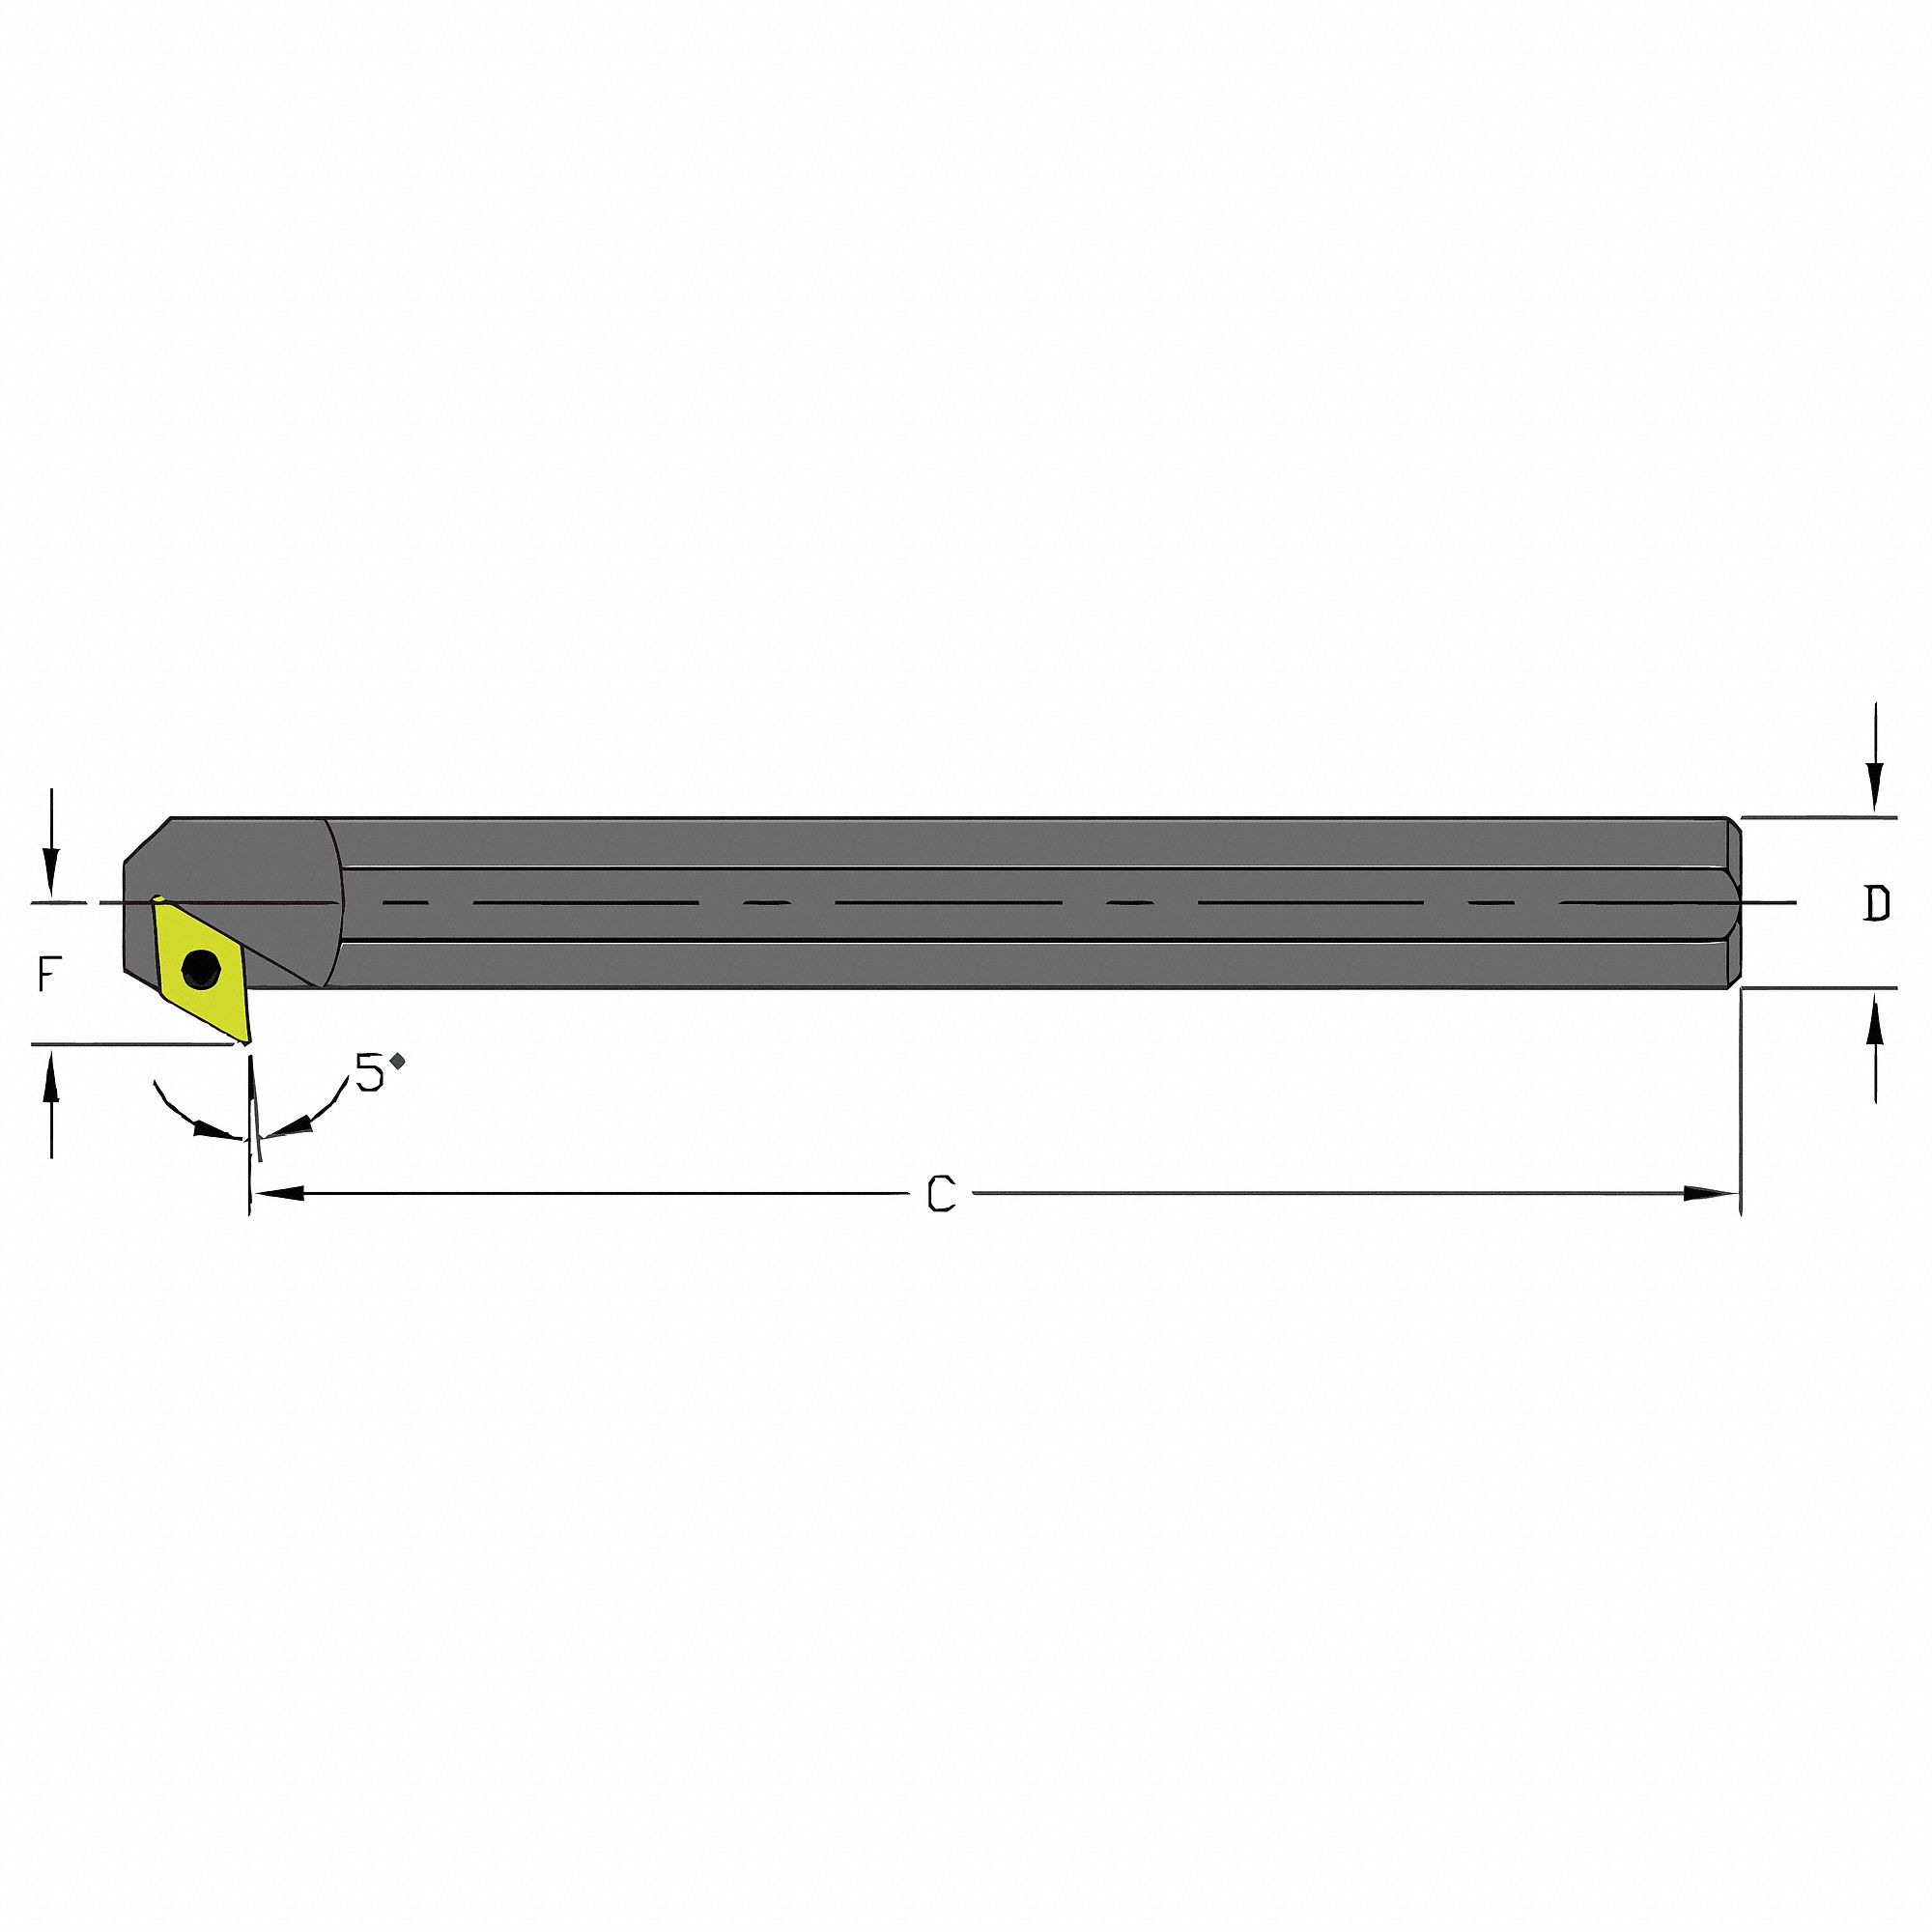 Indexable Boring Bar,  Insert Shape 55° Diamond,  Overall Length 9 in